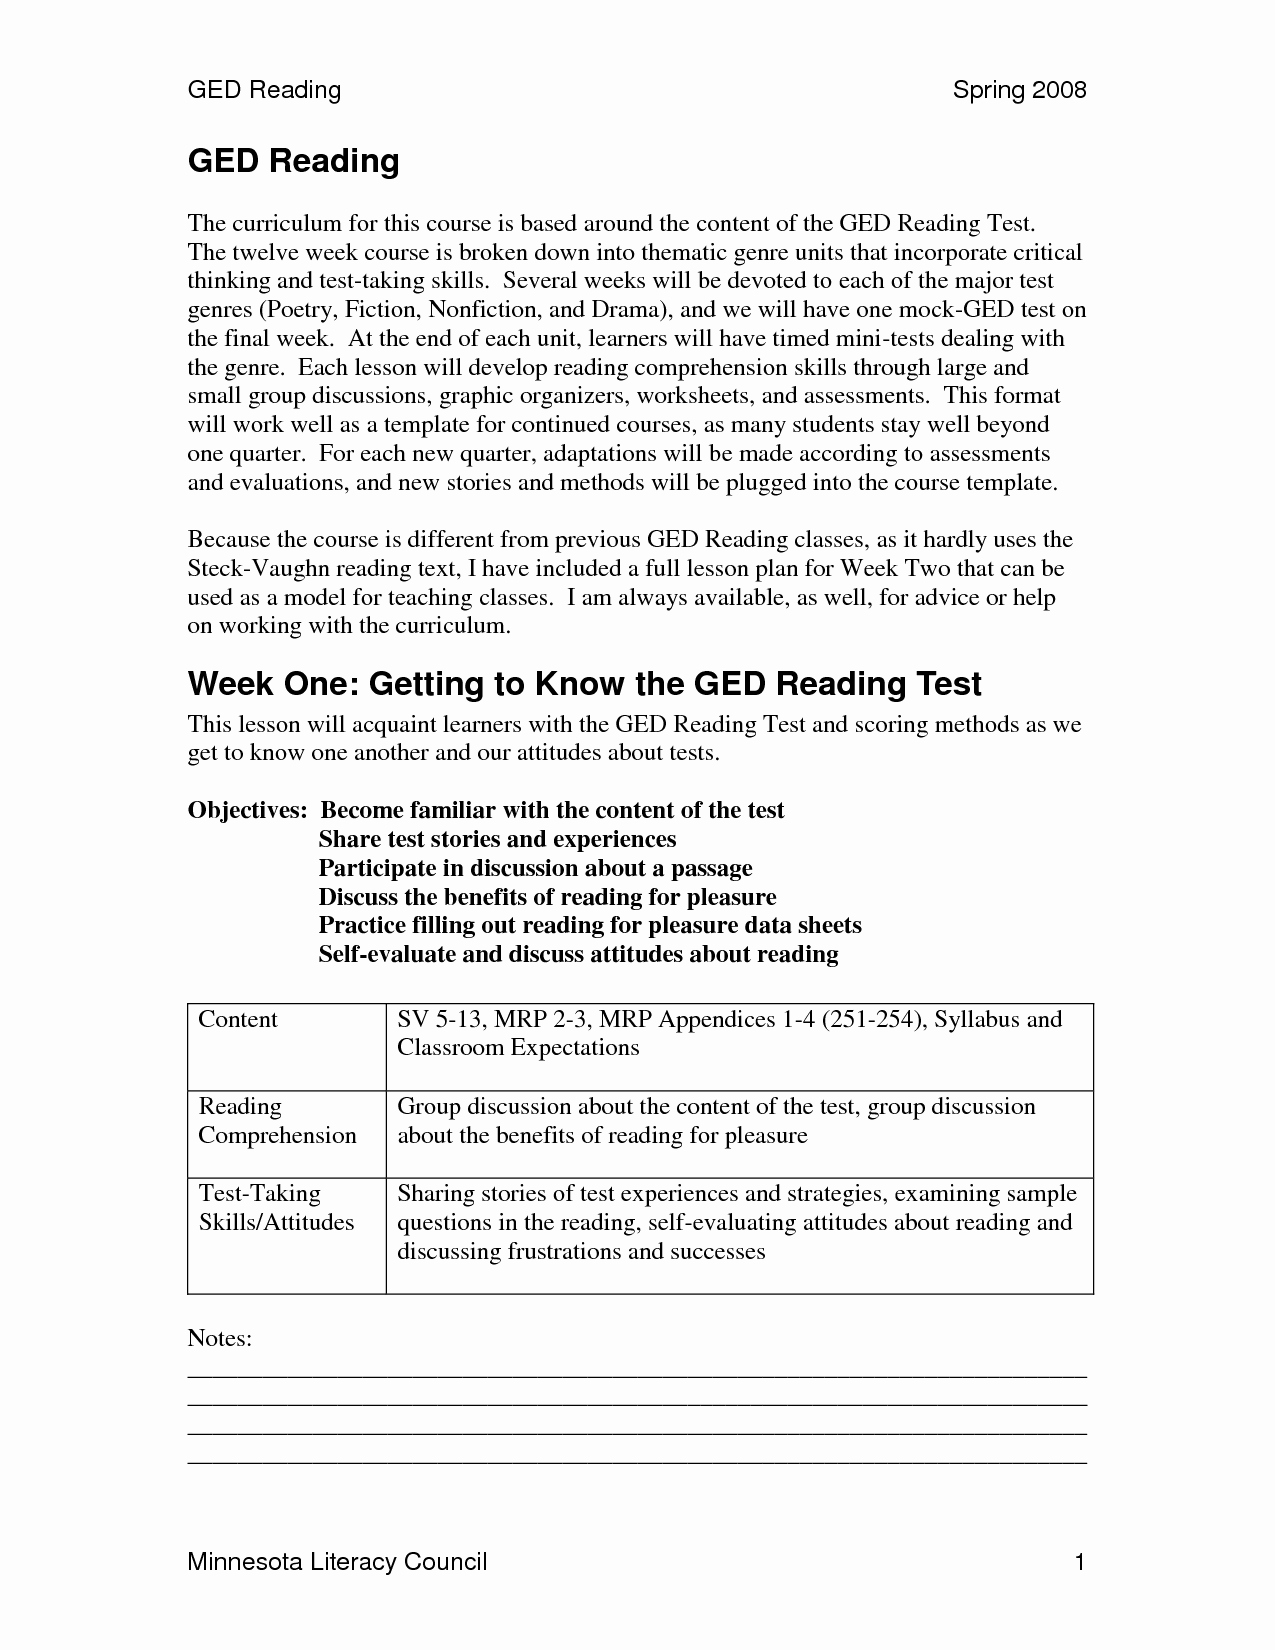 Pin By Kids Worksheets On 1st Grade English Worksheets